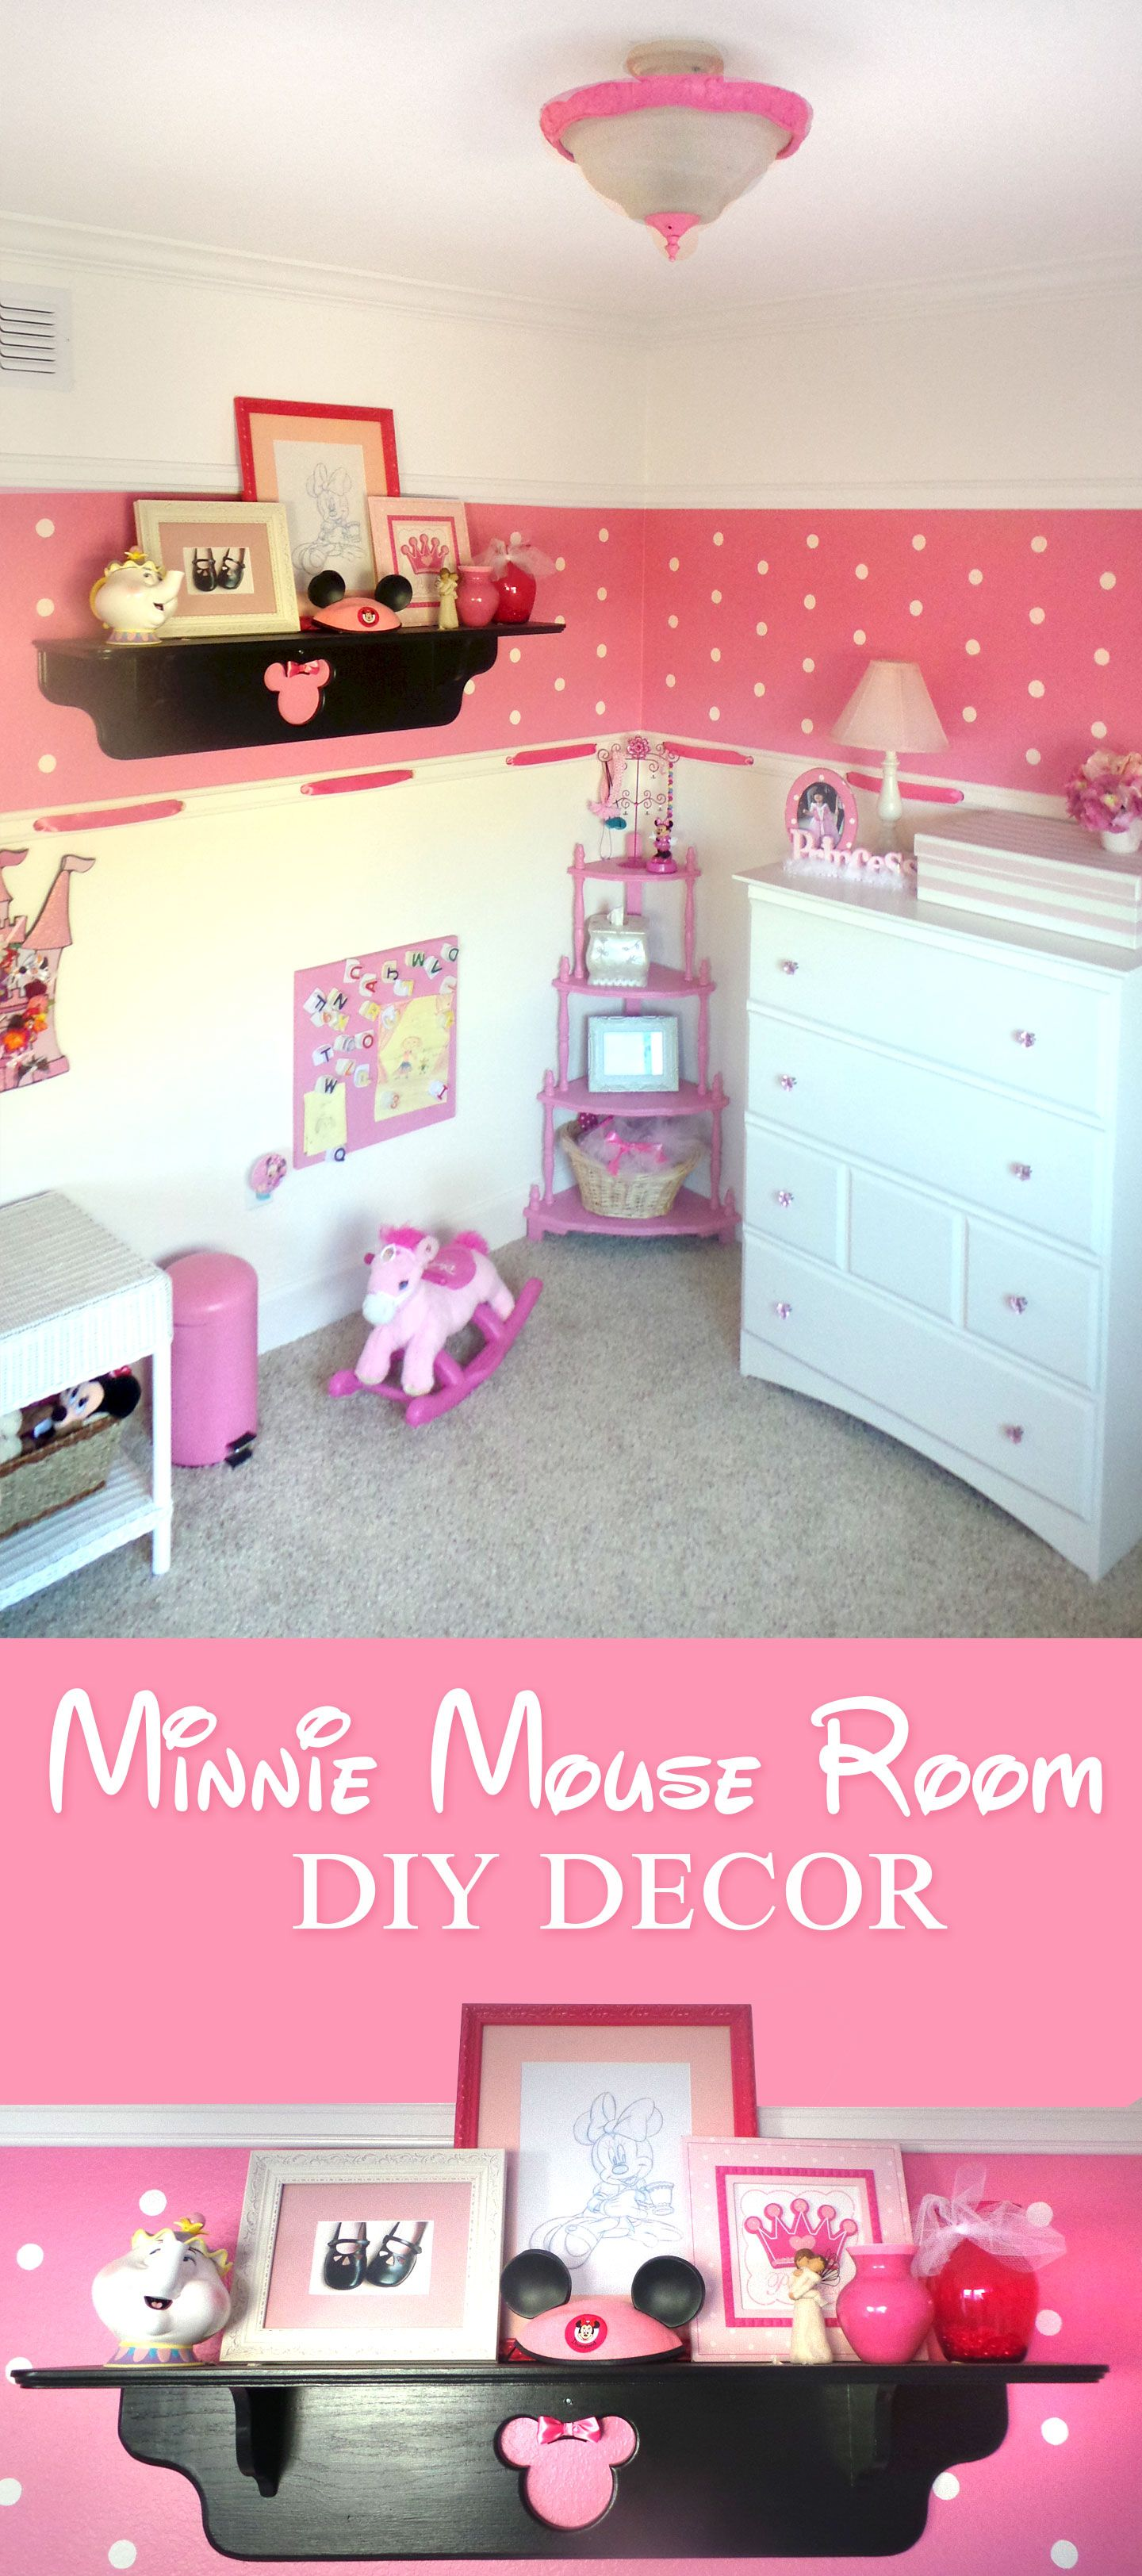 Chambre Complete Minnie Minnie Mouse Room Diy Decor Toddler Bedroom Deco Chambre